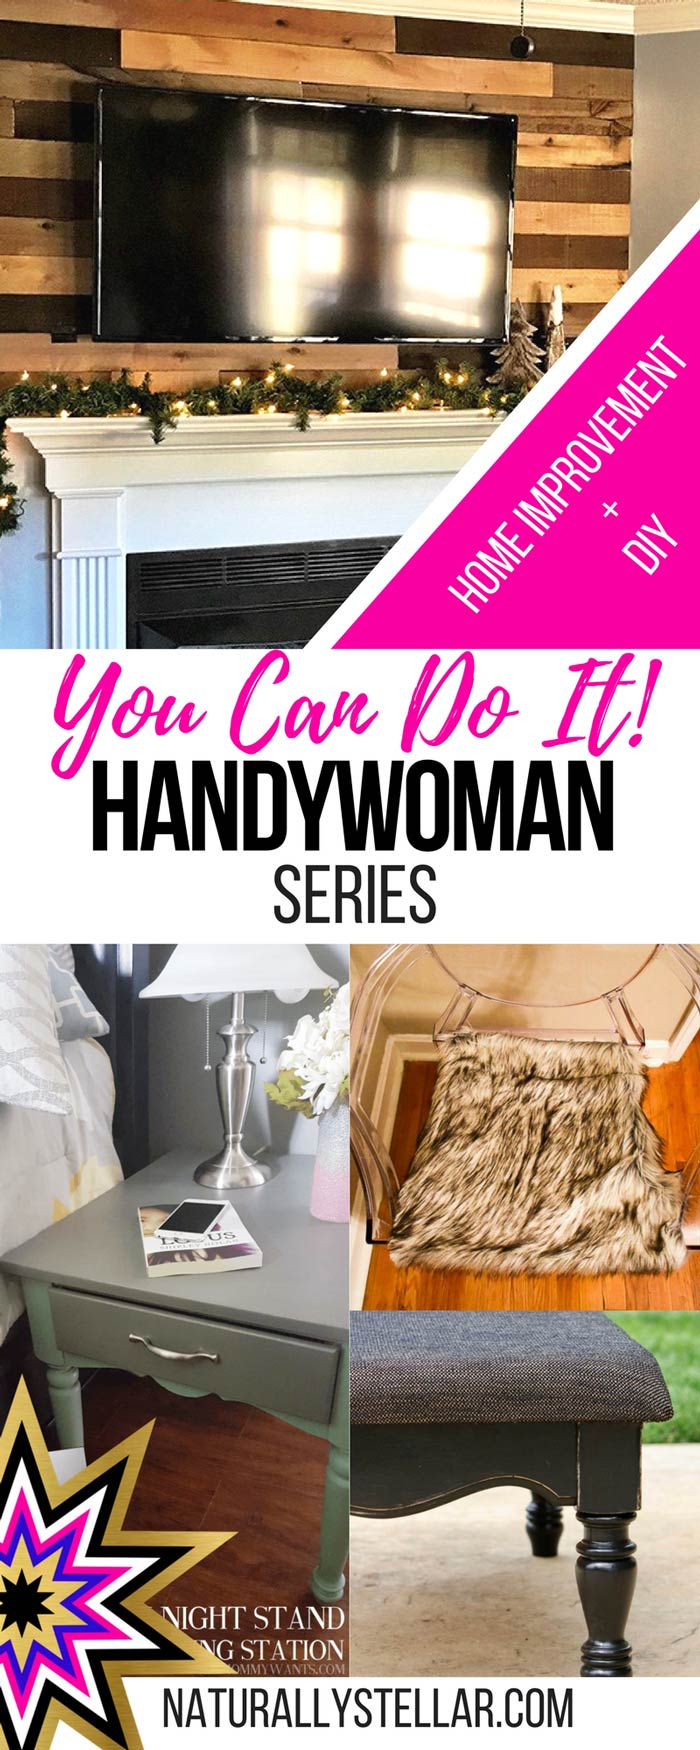 You Can Do It Handywoman Series | Naturally Stellar